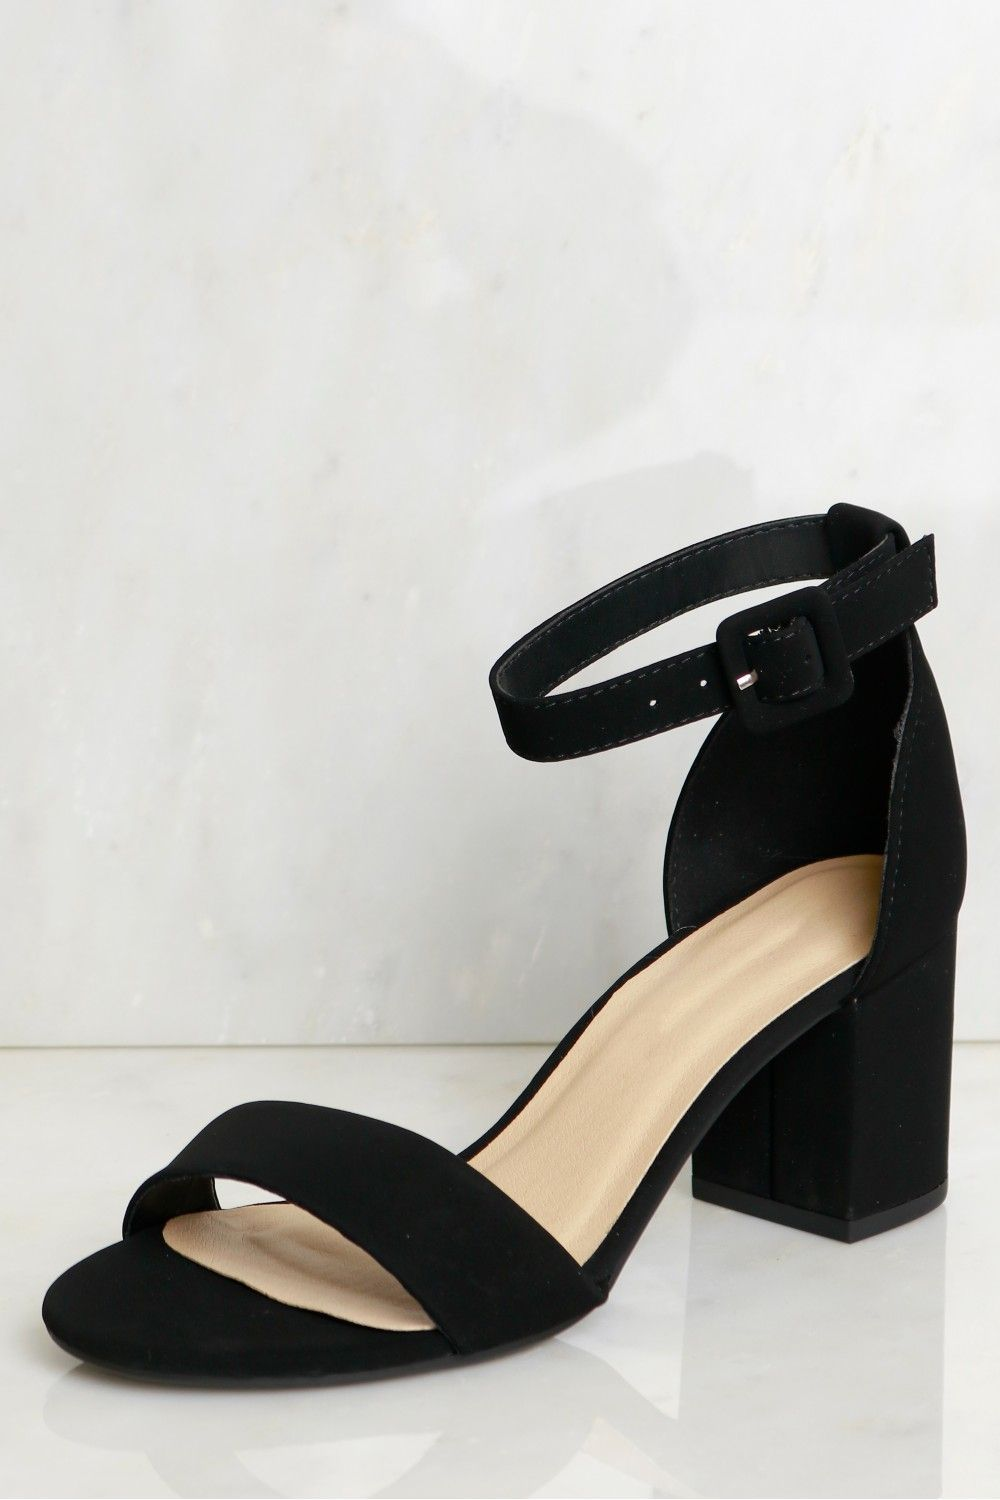 c34b676f02 Low Strappy Heel Black, A classic low chunky heel with a single strap  across the toes and a single strap around the ankle with a buckle closure.